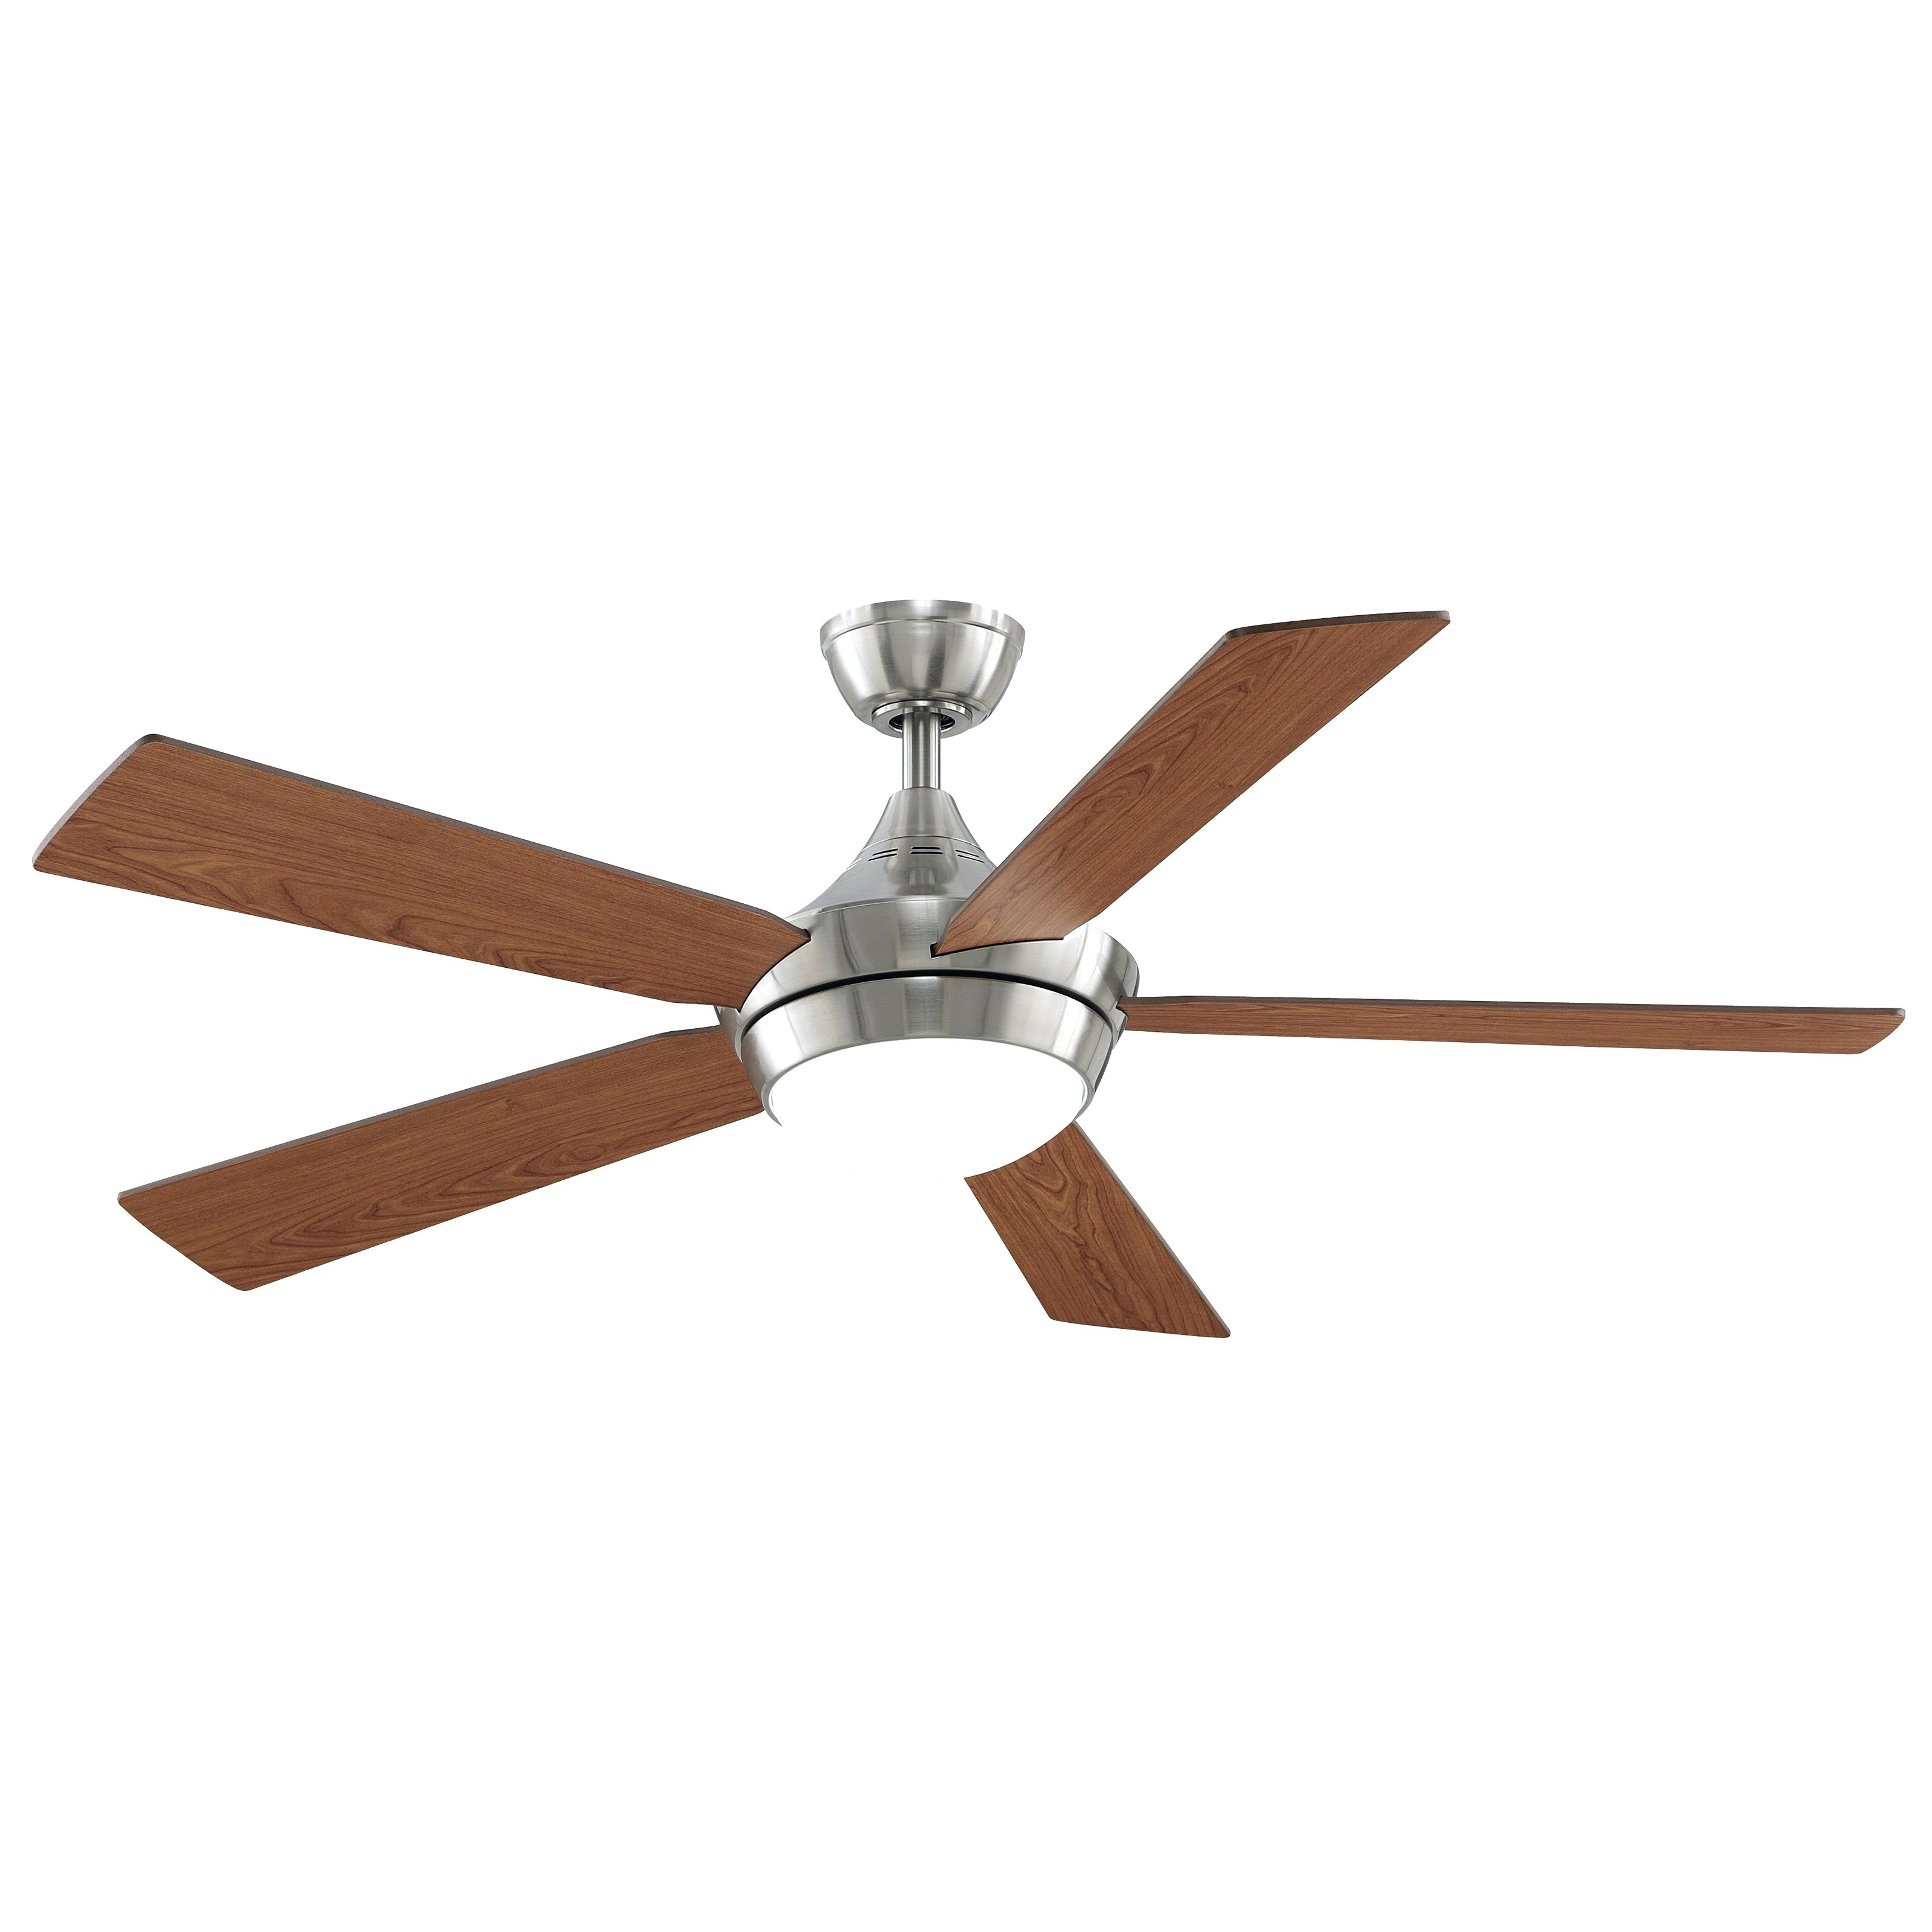 Outdoor Ceiling Fans At Bunnings Within Well Known Mercator Ceiling Fans Bunnings • Ceiling Fans Ideas (View 15 of 20)